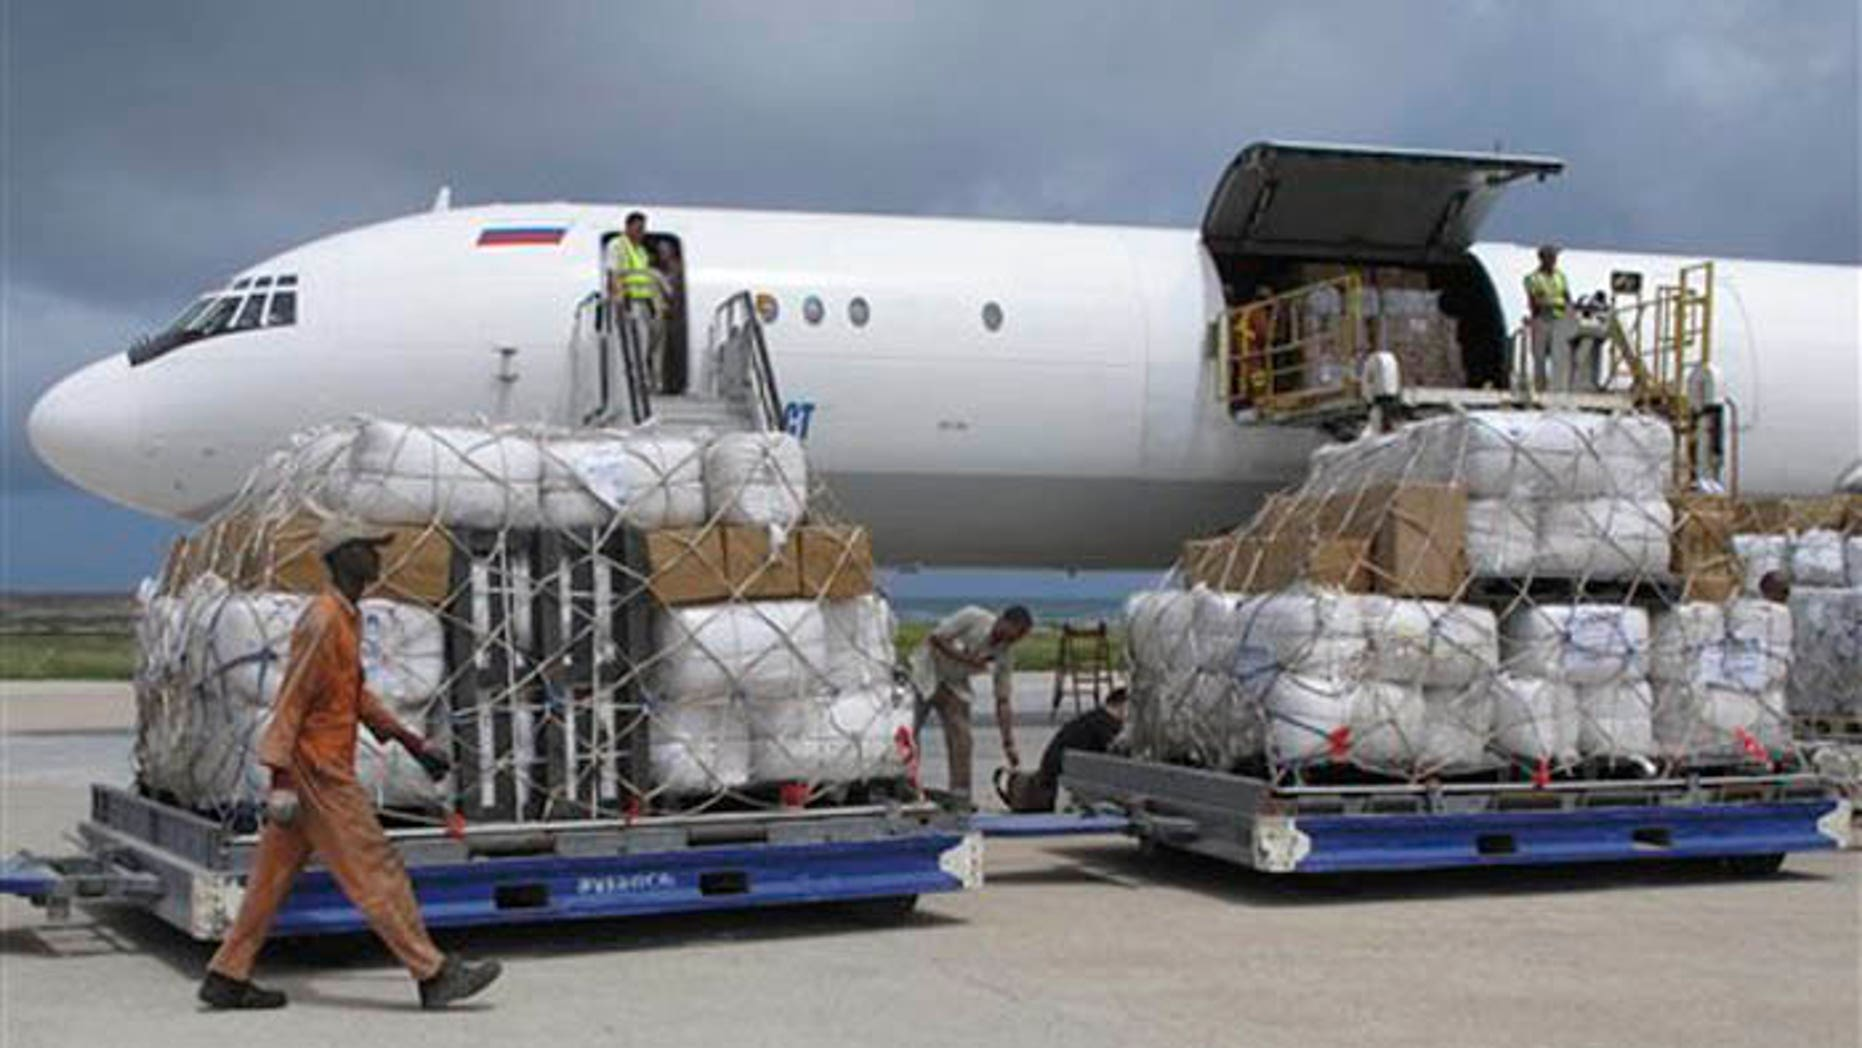 The UN is wasting money on charter flights for peacekeeping and relief missions, according to Fox News report. (AP Photo/ Mohamed Sheikh Nor).